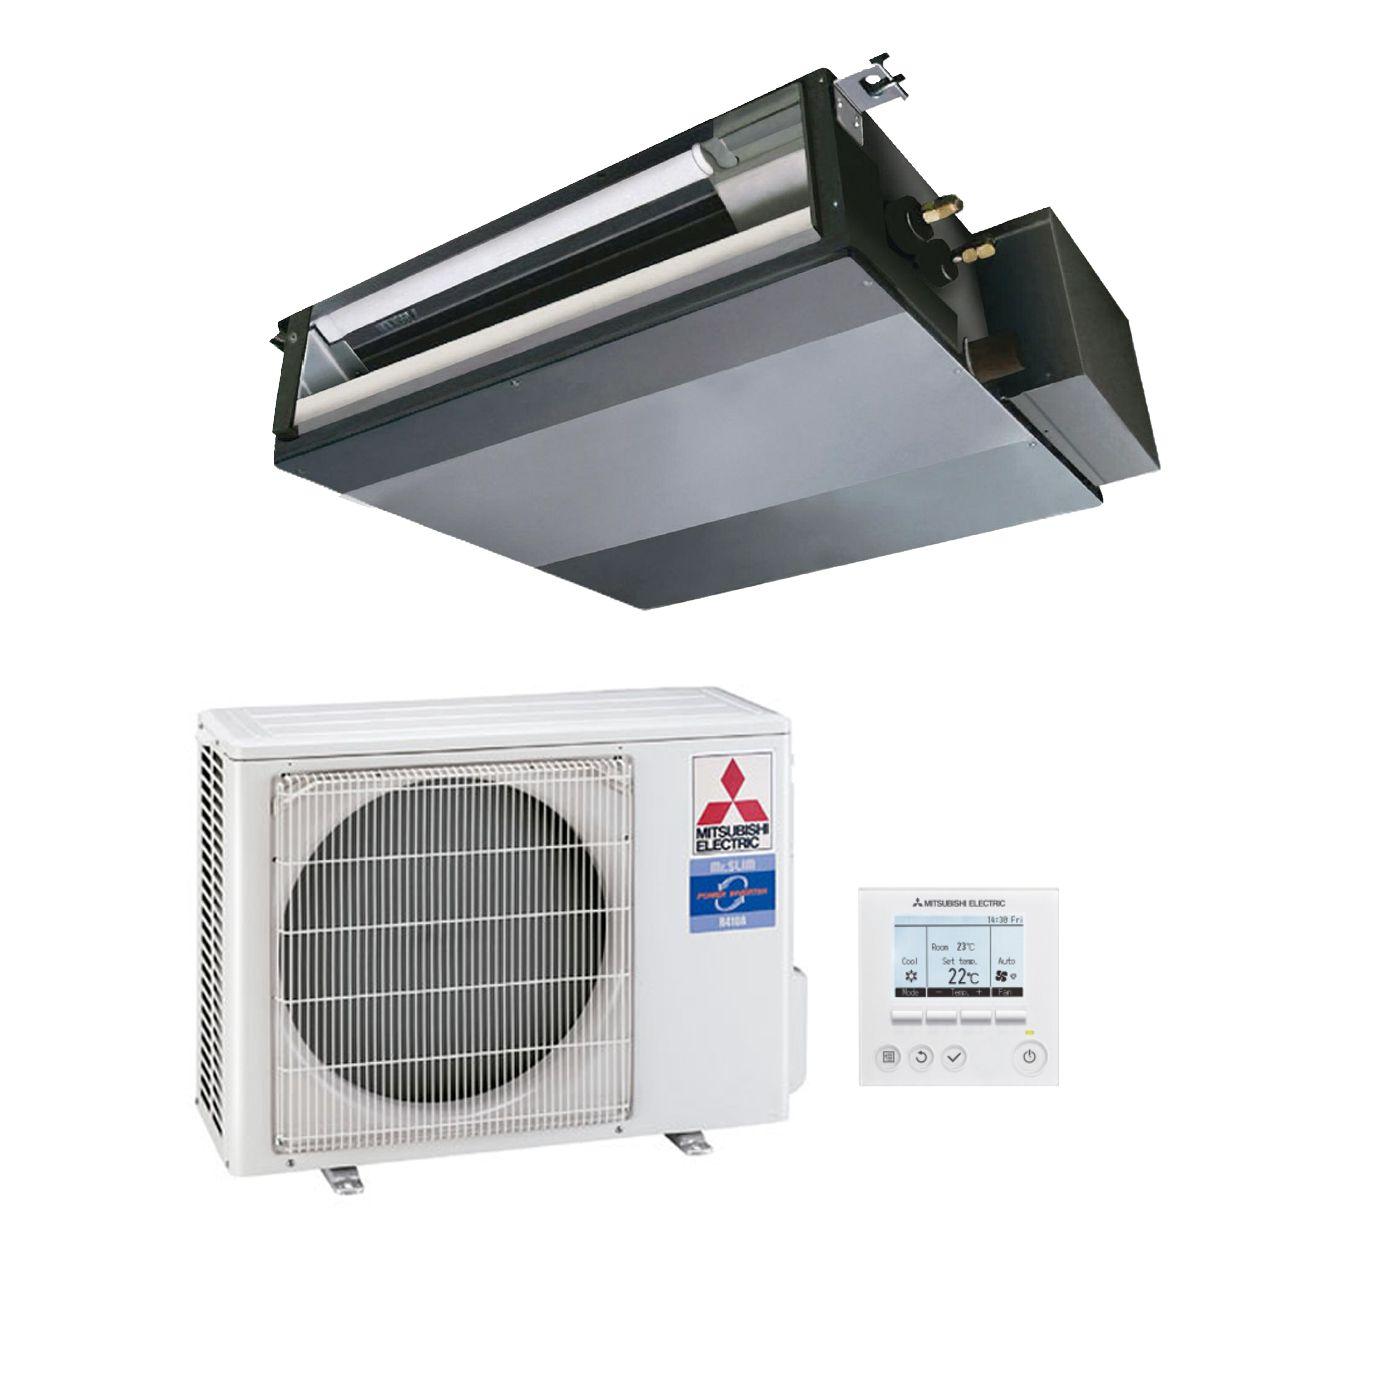 Mitsubishi Par 31maa Wiring Diagram Library Inverter Electric Air Conditioning Sez Ka50vaq Concealed Ducted Heat Pump 5kw 17000btu A